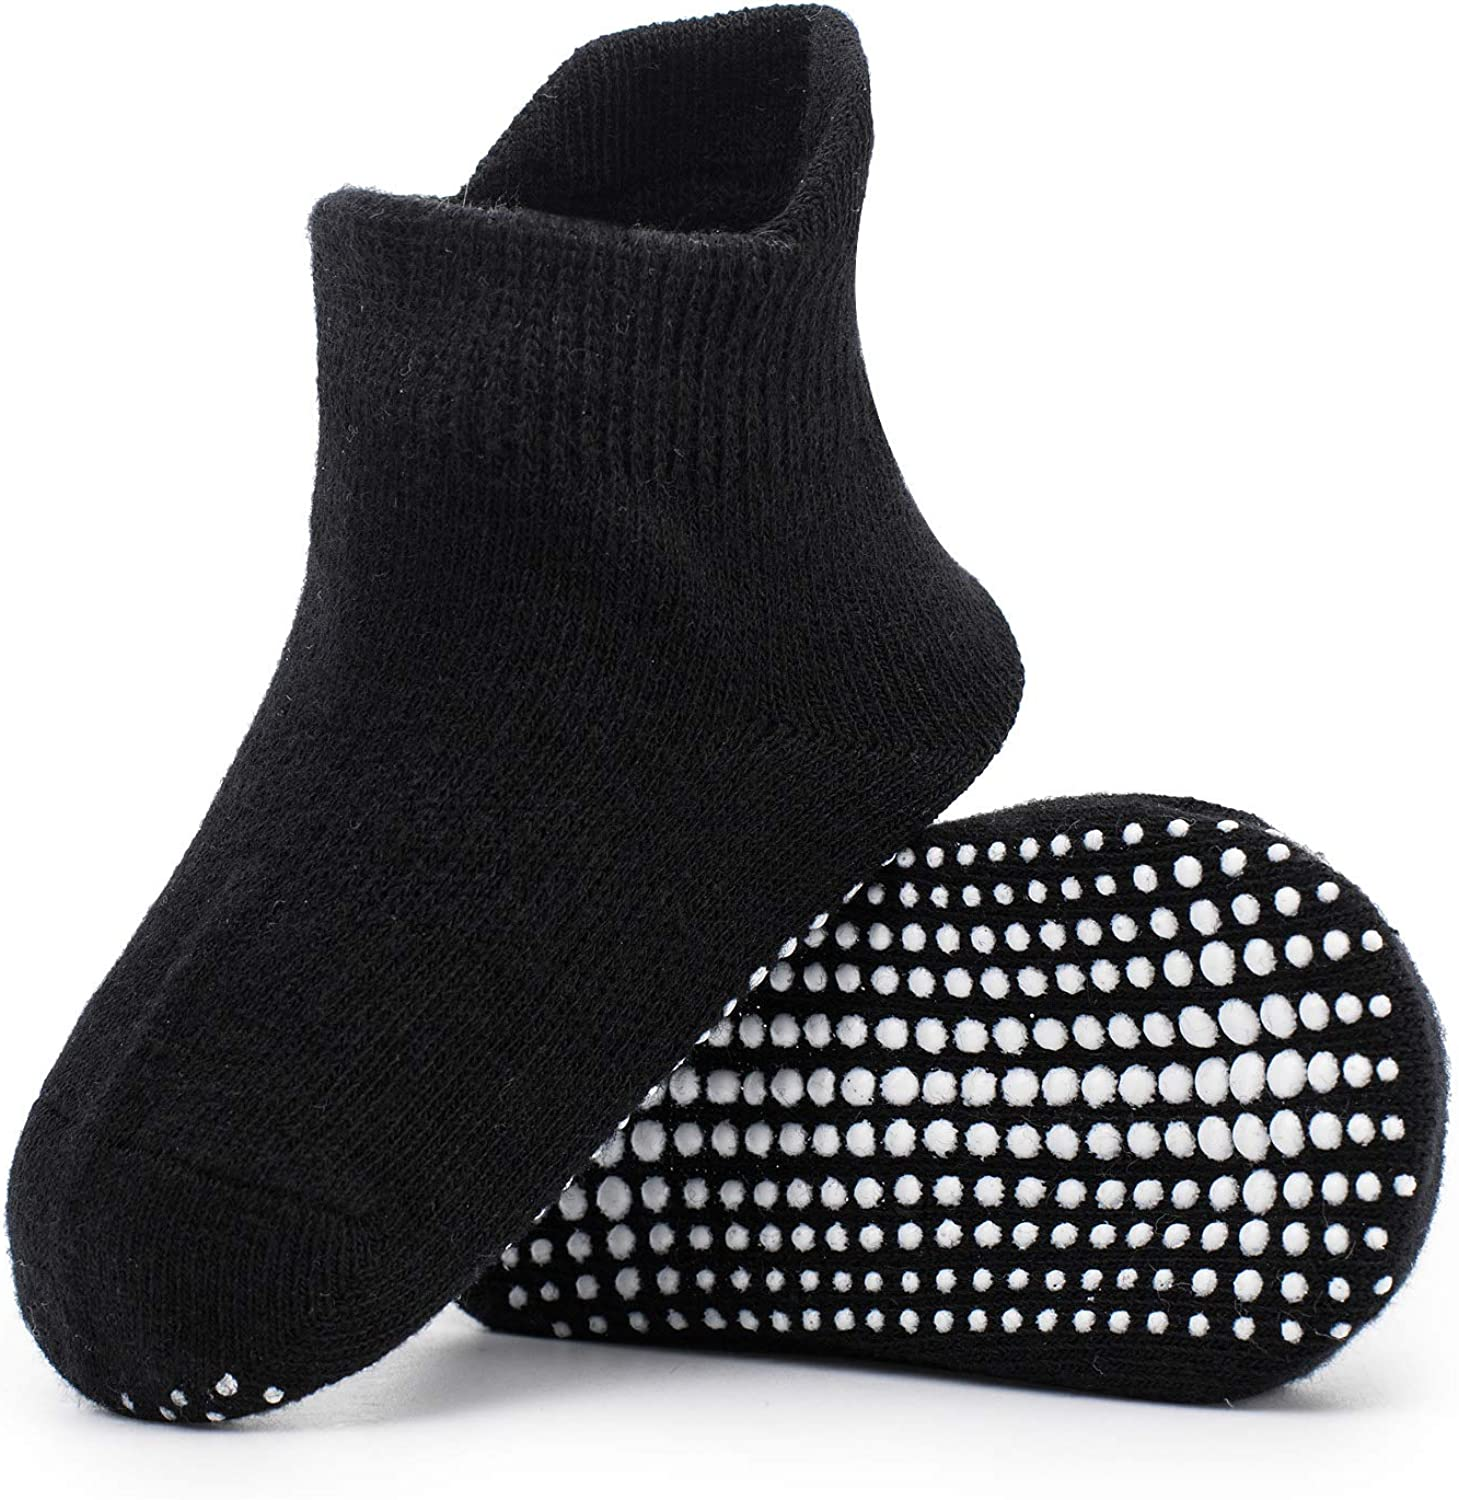 Zaples Baby Non Slip Grip Ankle Socks with Non Skid Soles for Infants Toddlers Kids Boys Girls